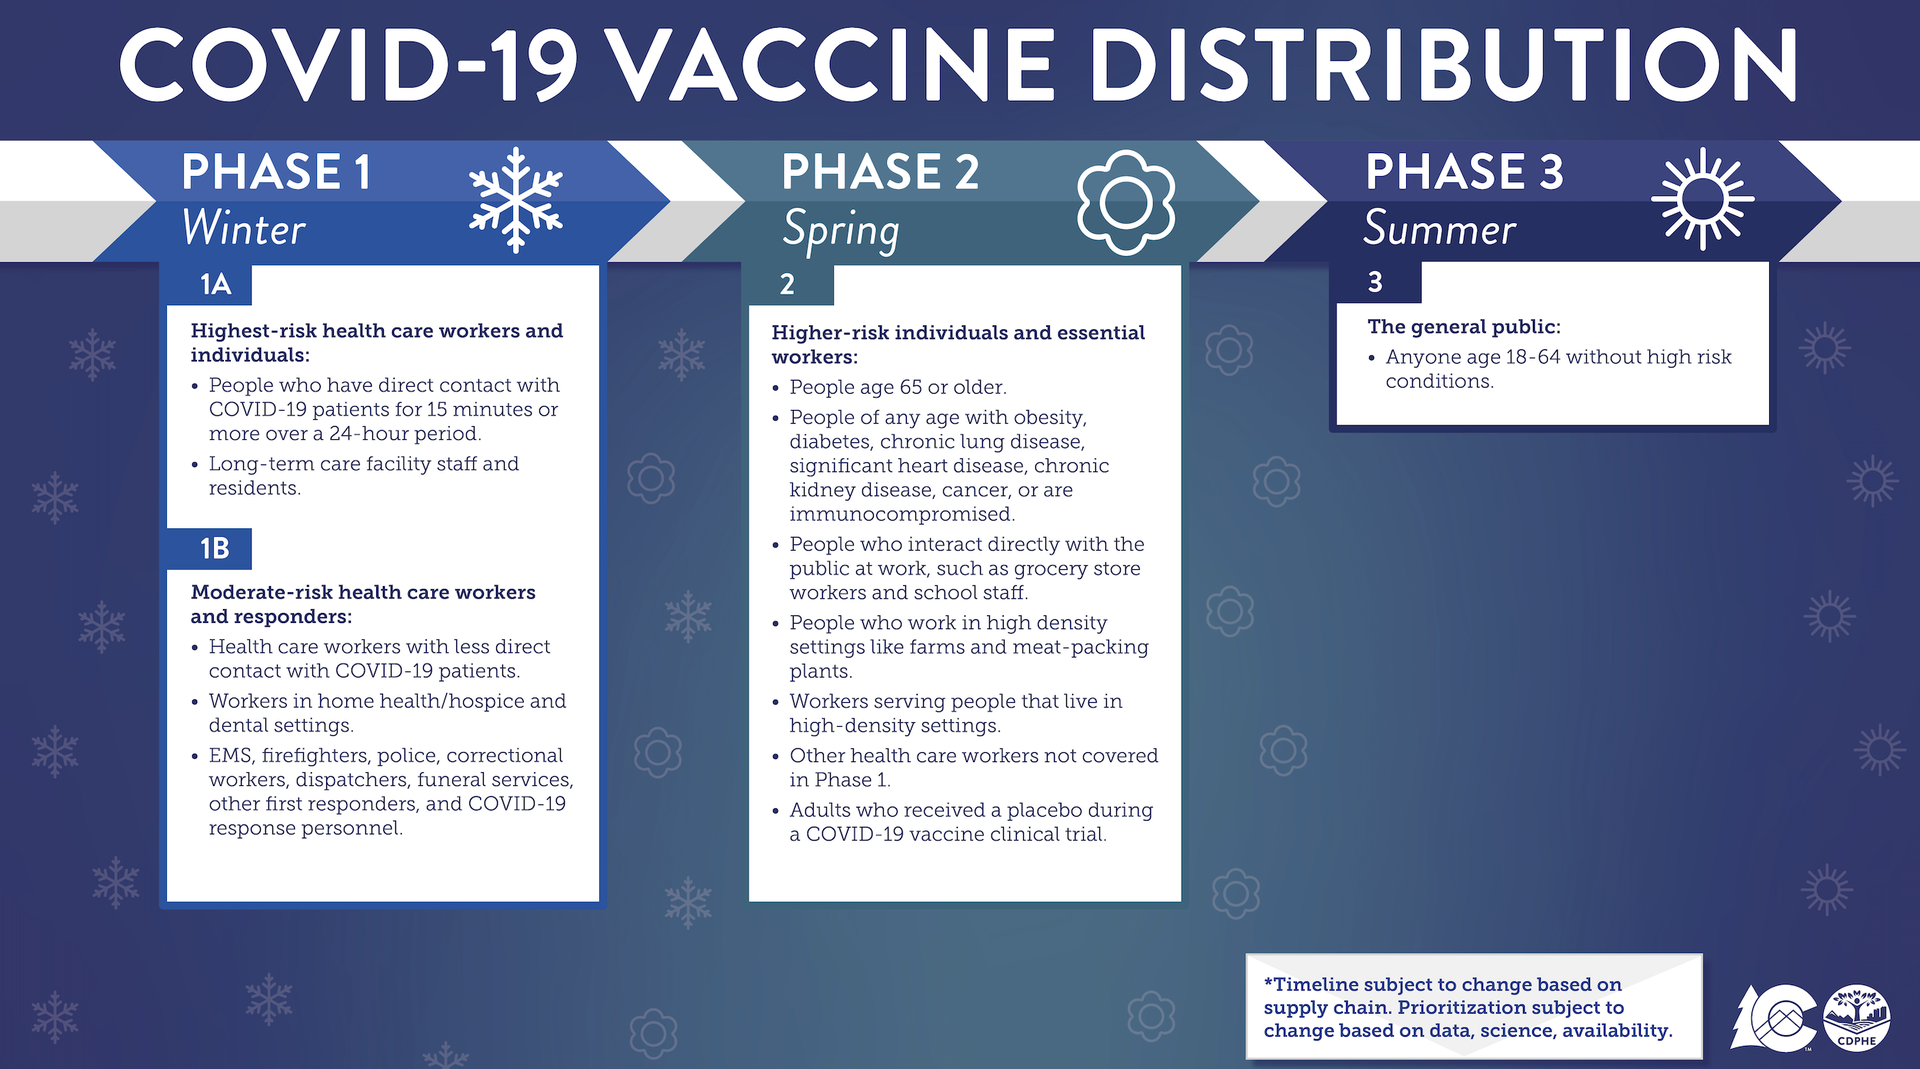 Vaccine Distribution Information